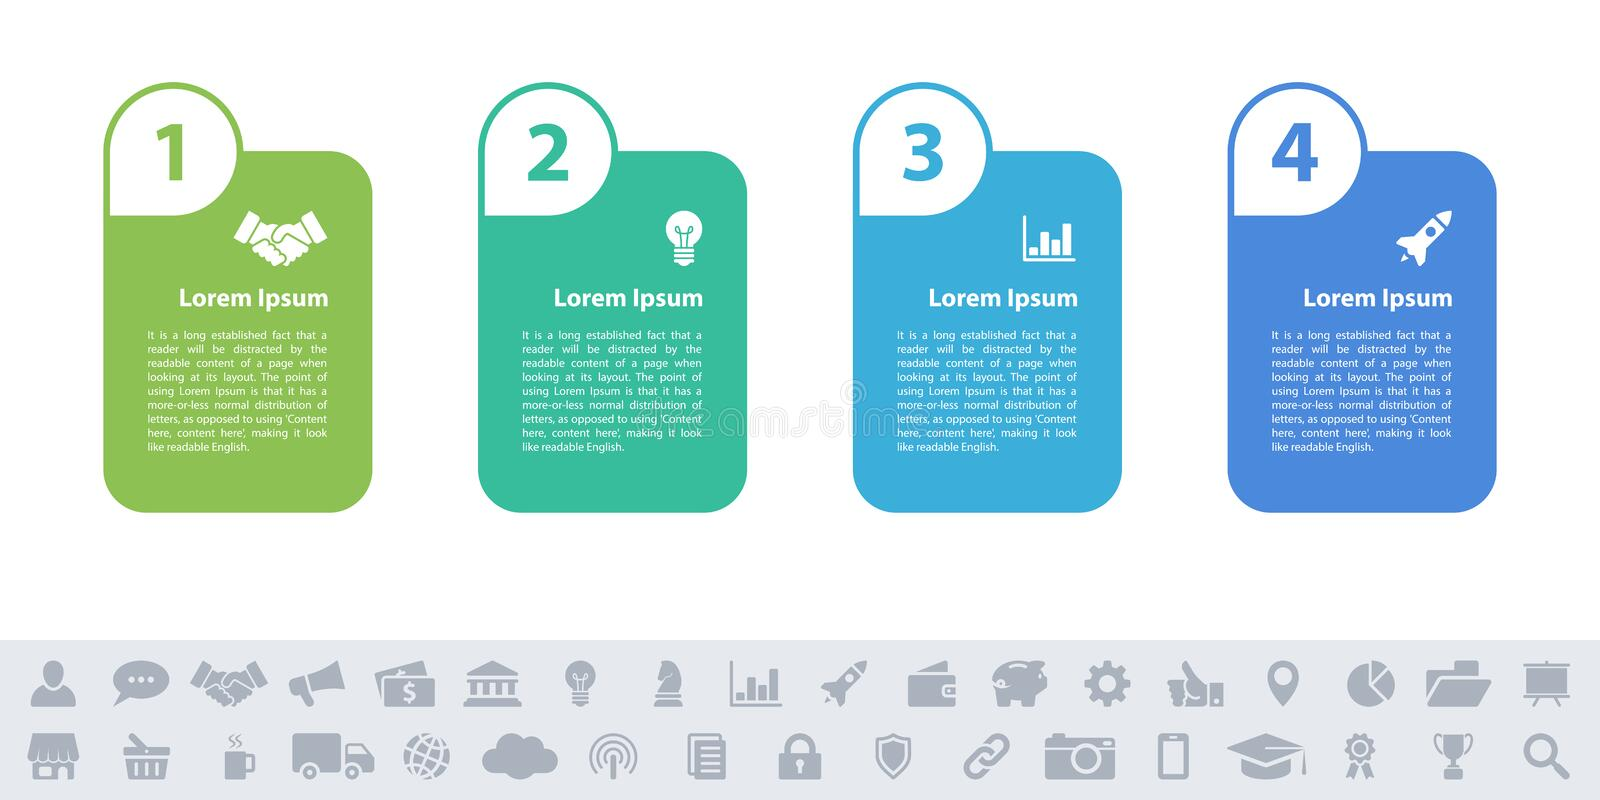 Business infographic design template - 4 steps vector illustration